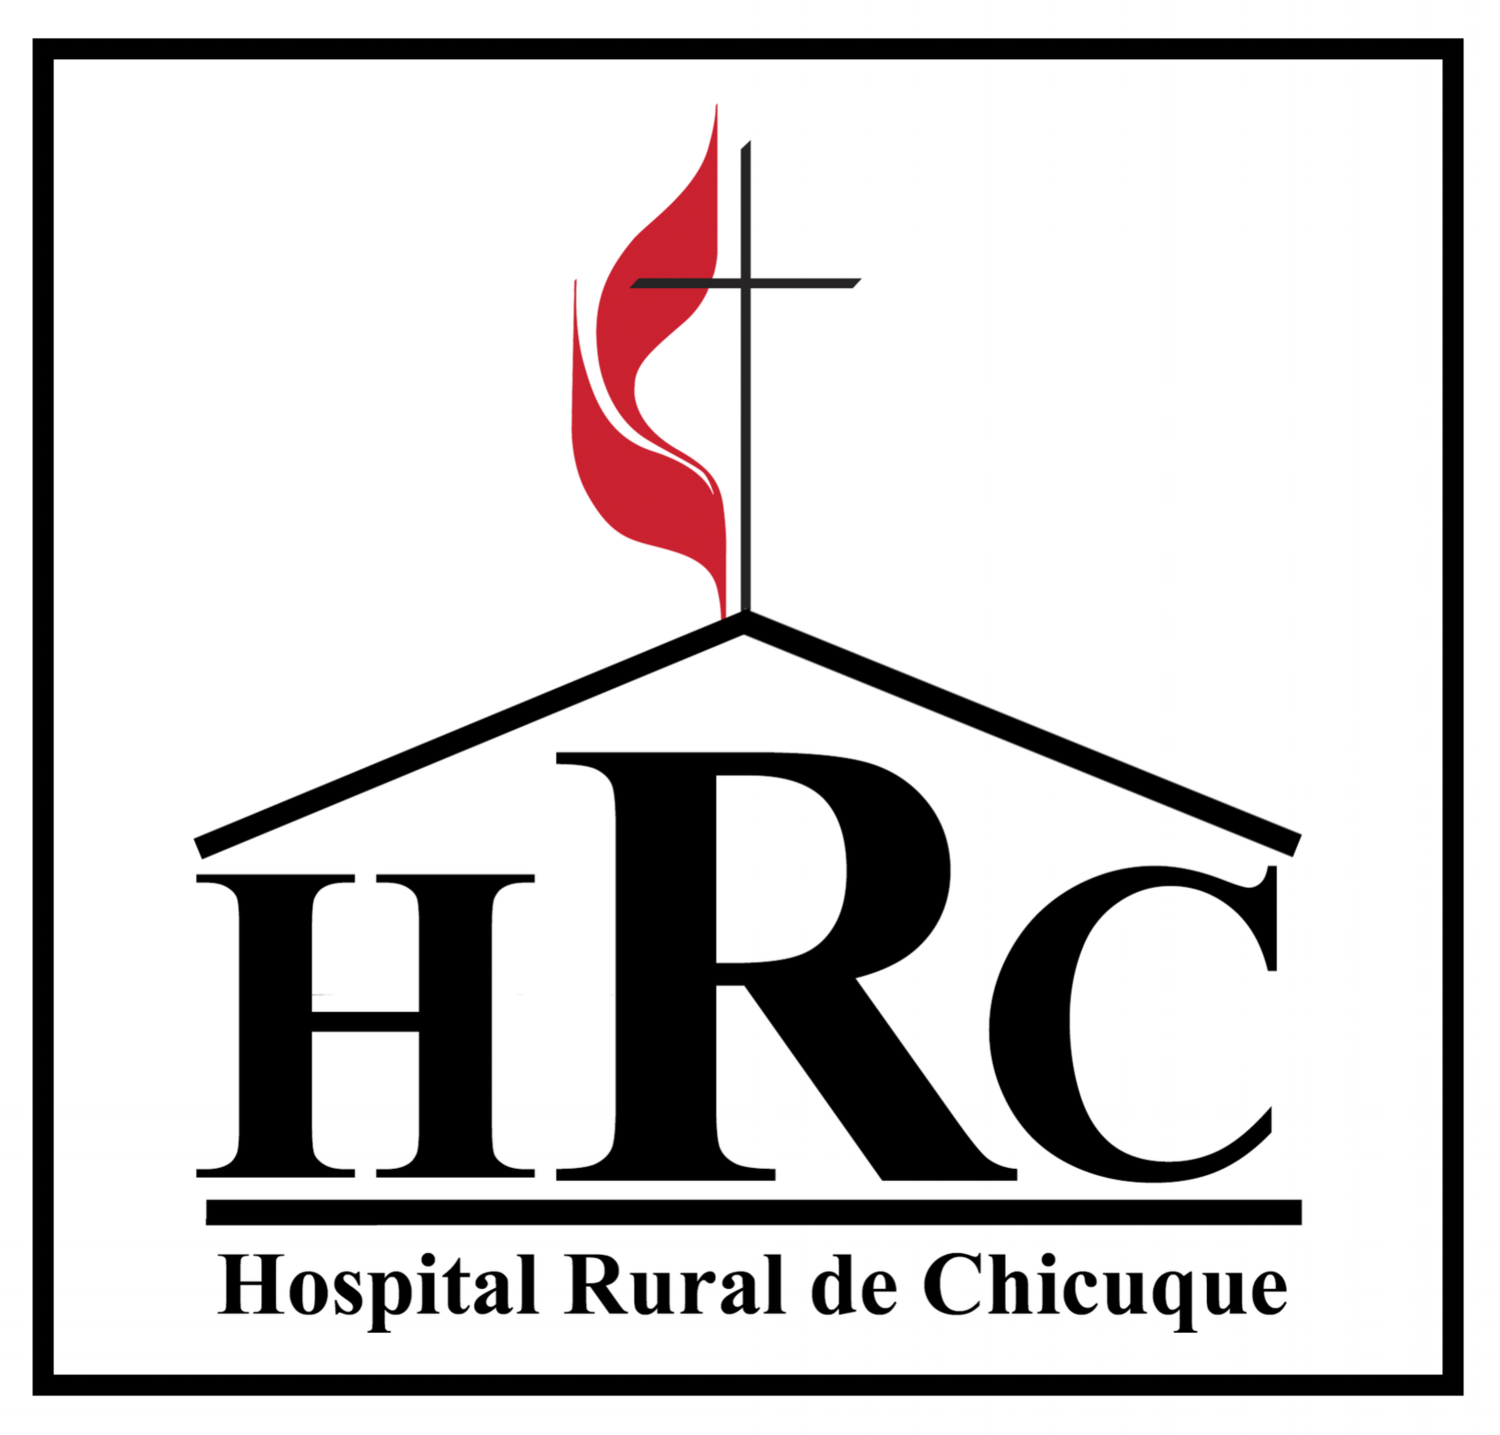 Chicuque Rural Hospital